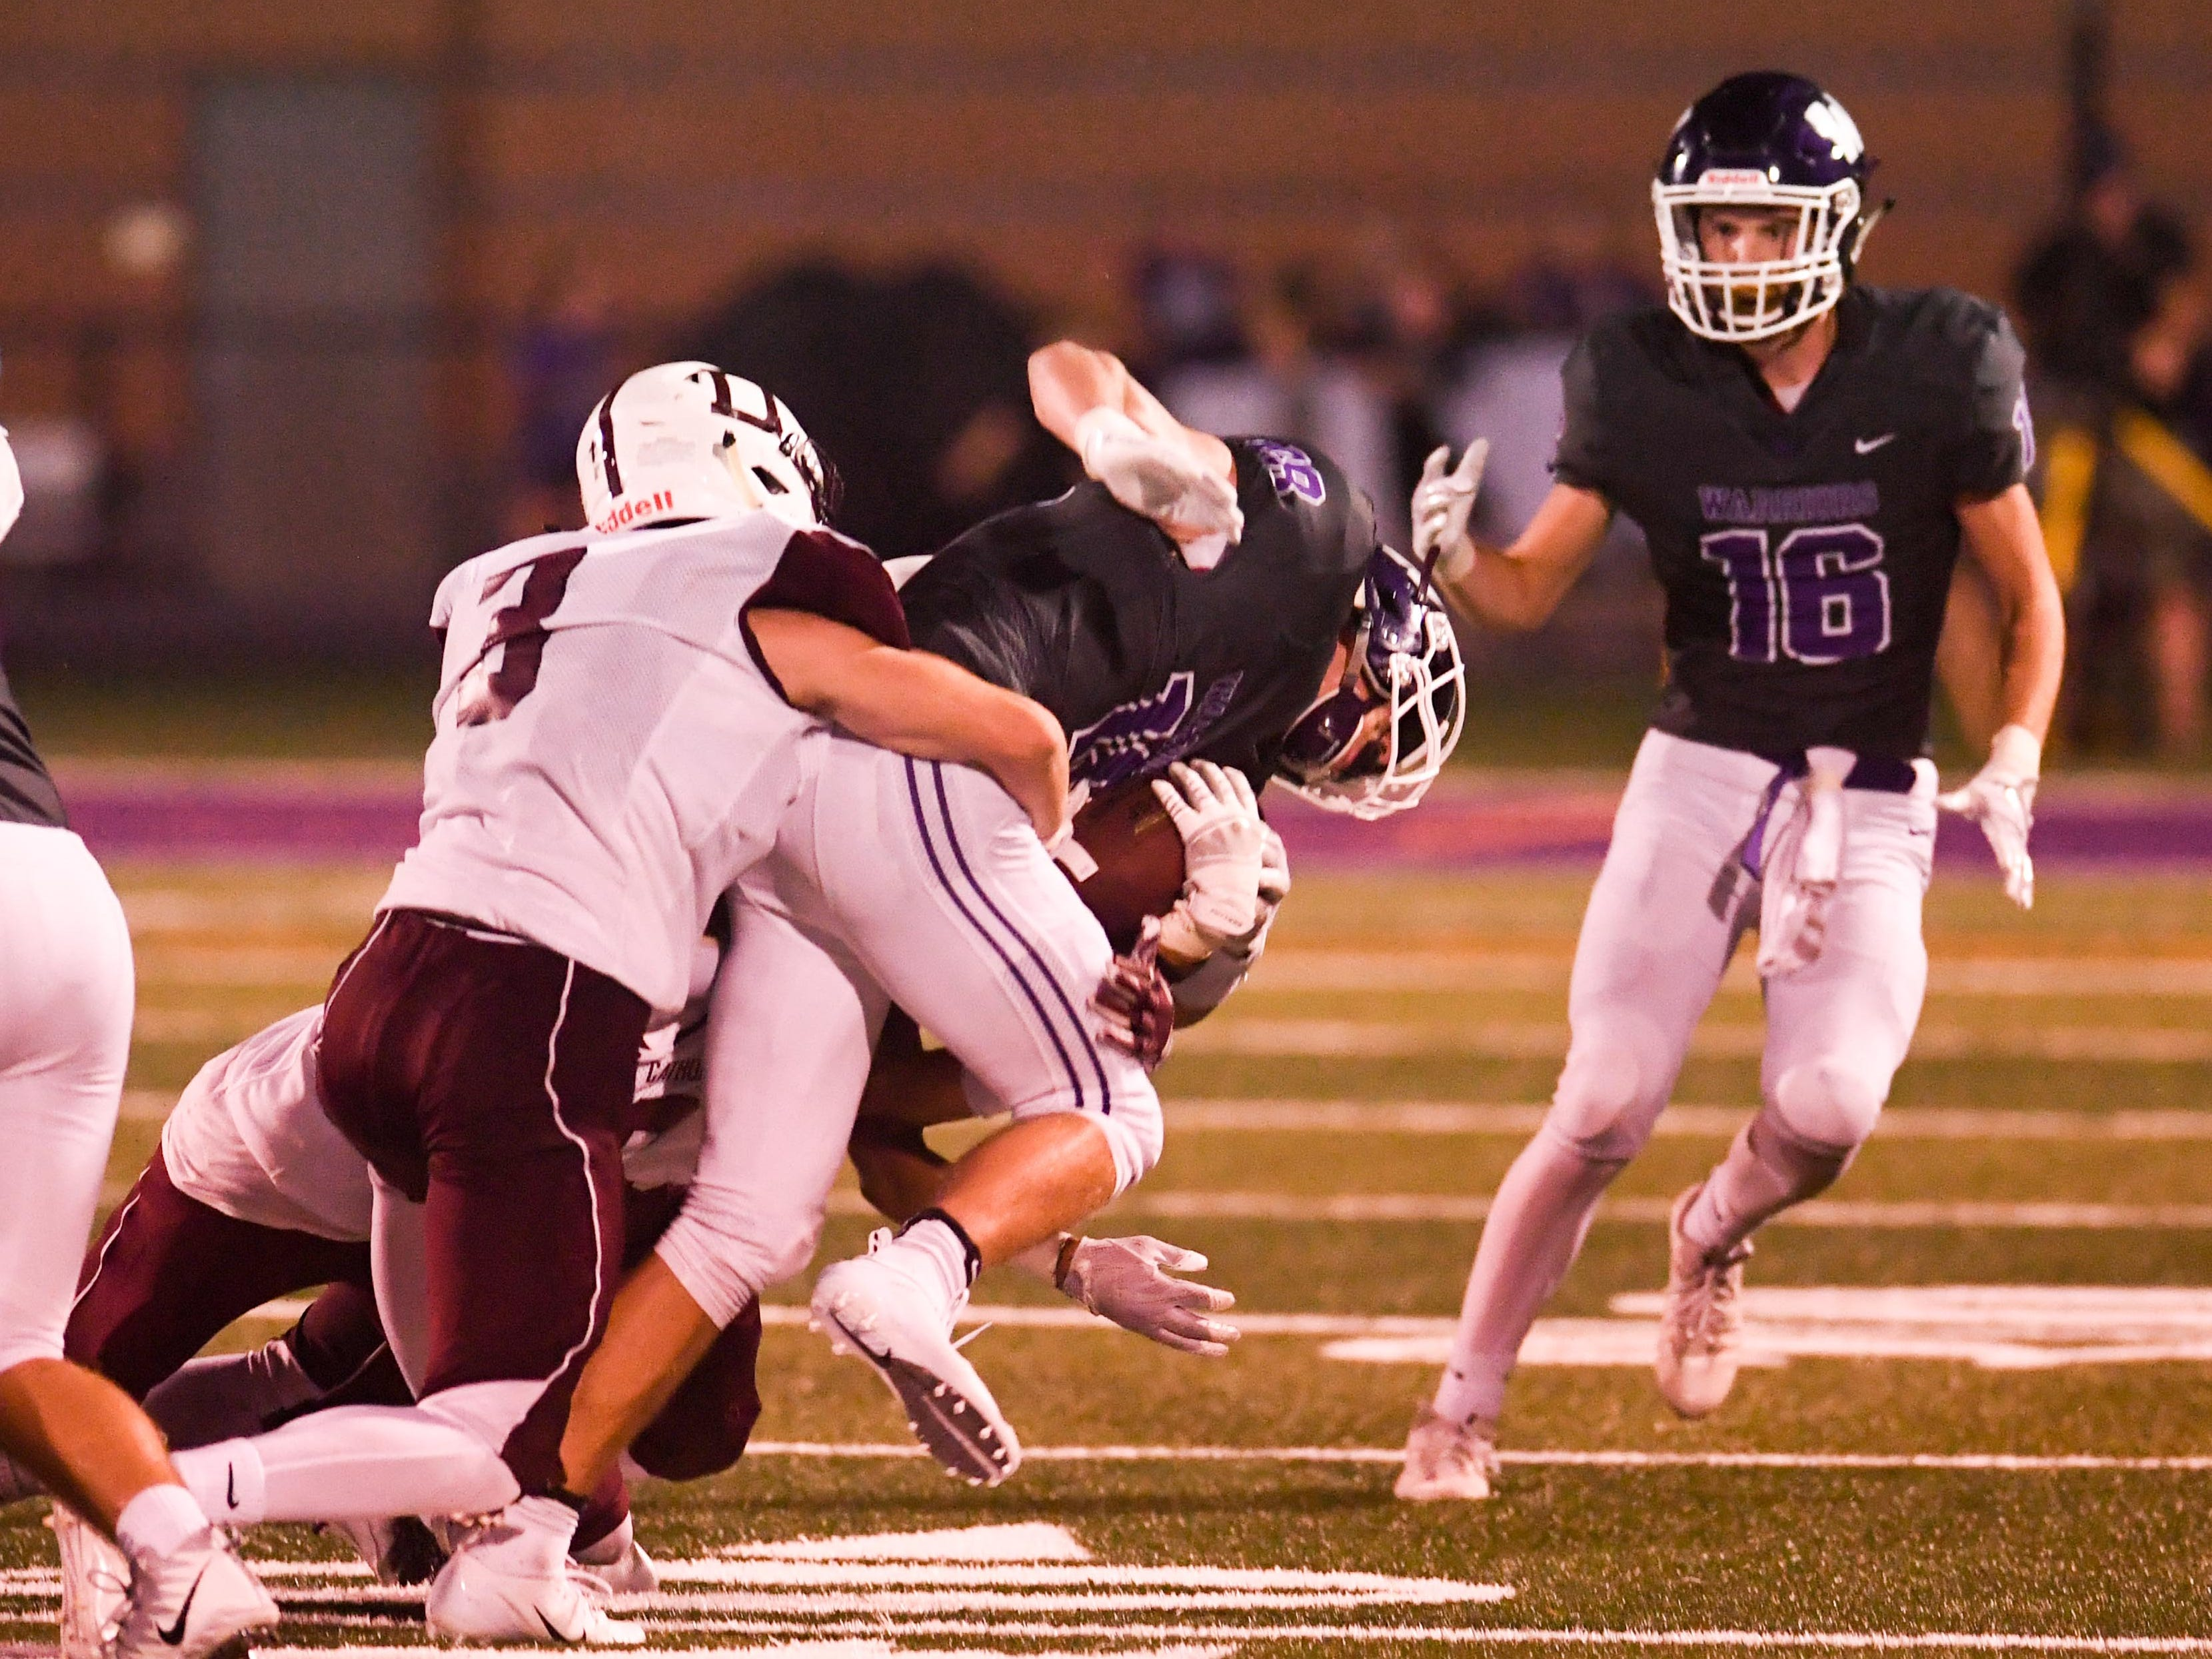 Waukee's Zach Eaton (18) catches a pass and fights his way to the end zone in the third quarter of play on Friday, August 24, 2018 during a football game between the Waukee Warriors and the Dowling Catholic Maroons at Waukee High School.